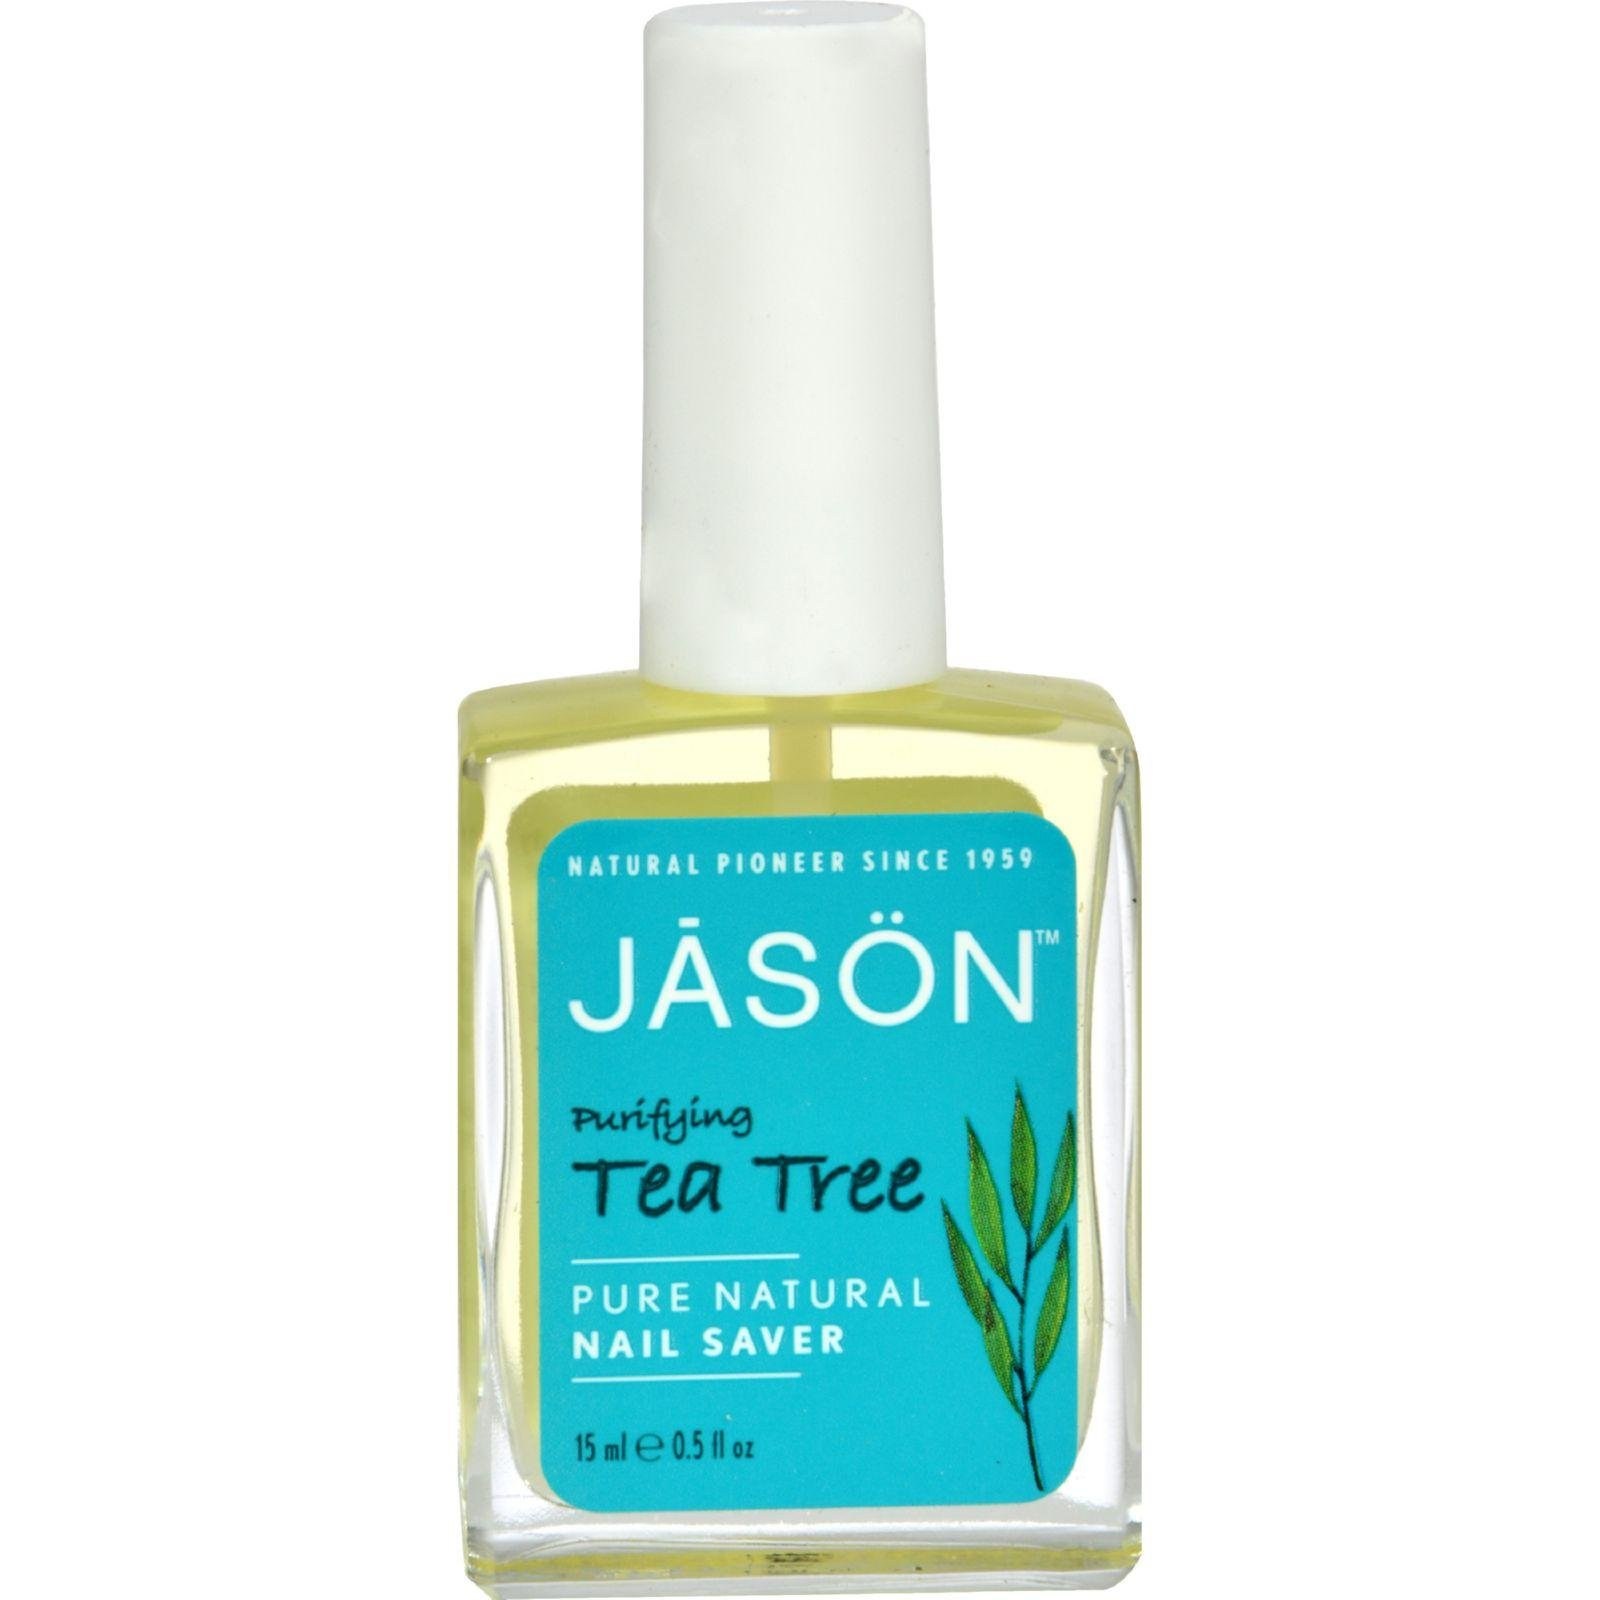 Jason tea tree nail saver